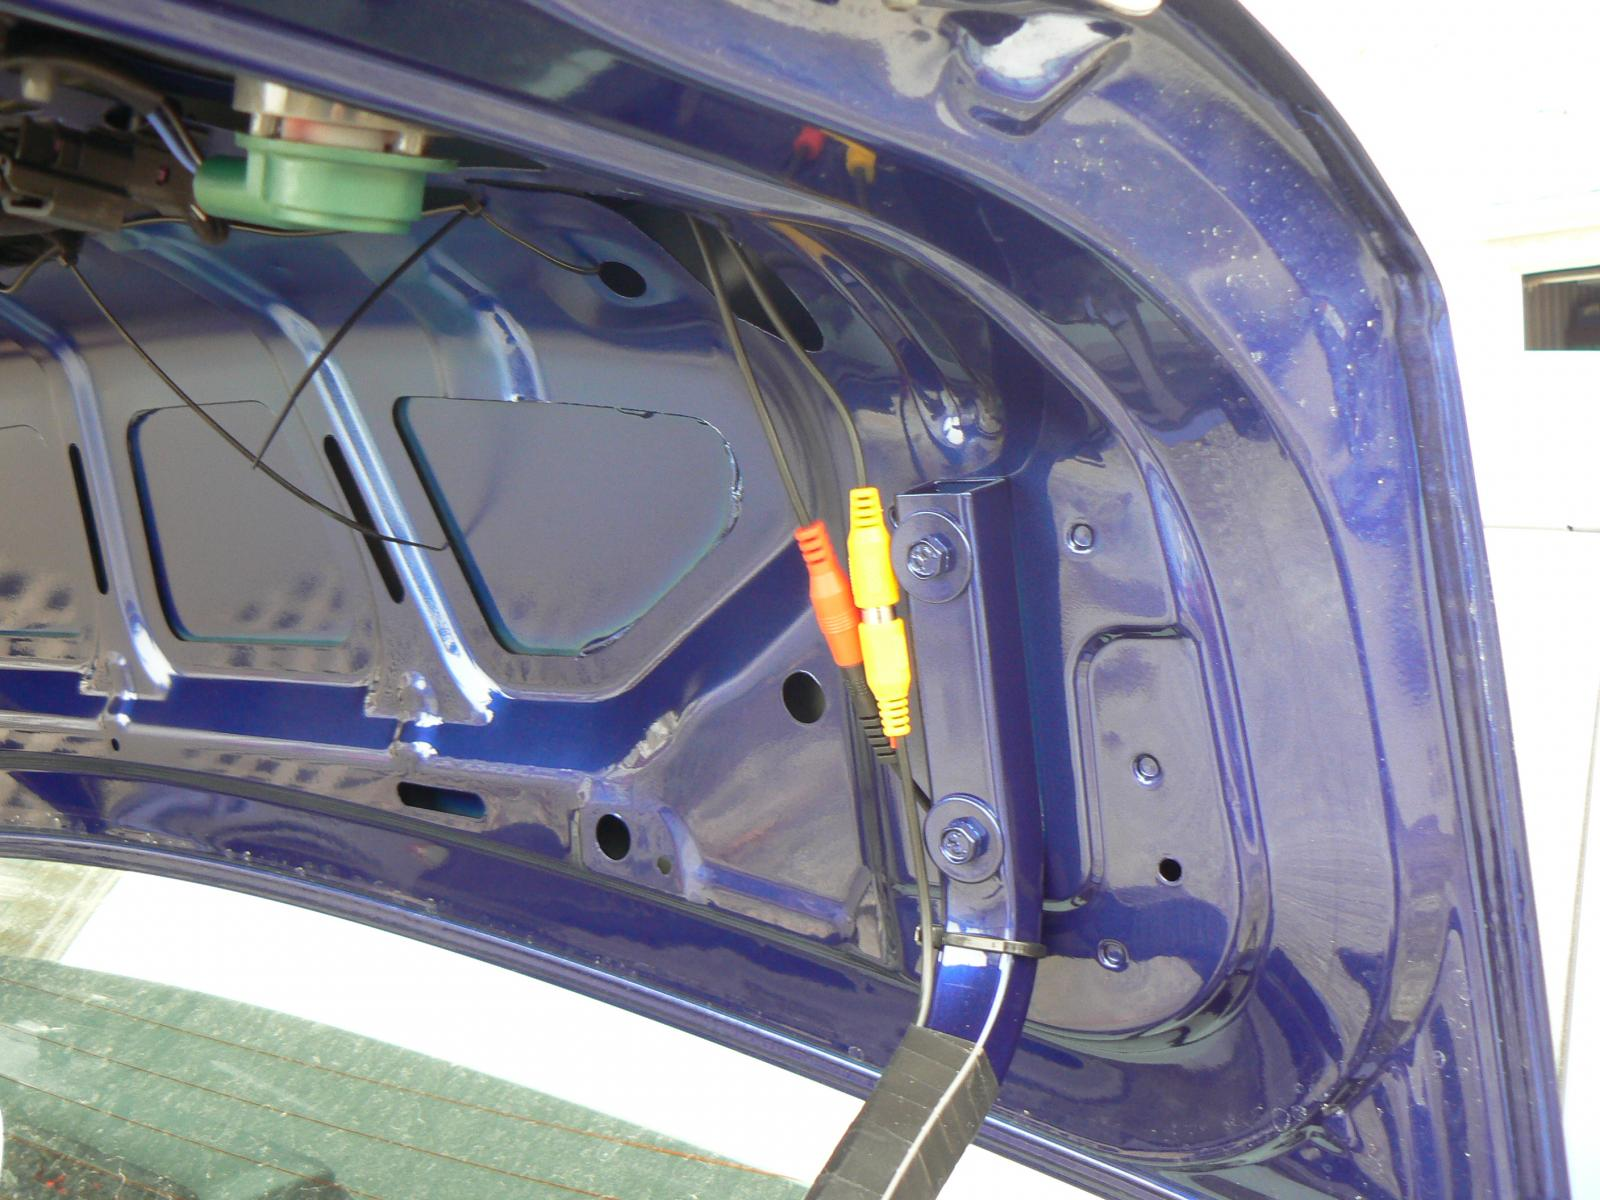 hight resolution of how to install a back up camera cheaply chevrolet cruze forums cruze reverse camera wiring diagram